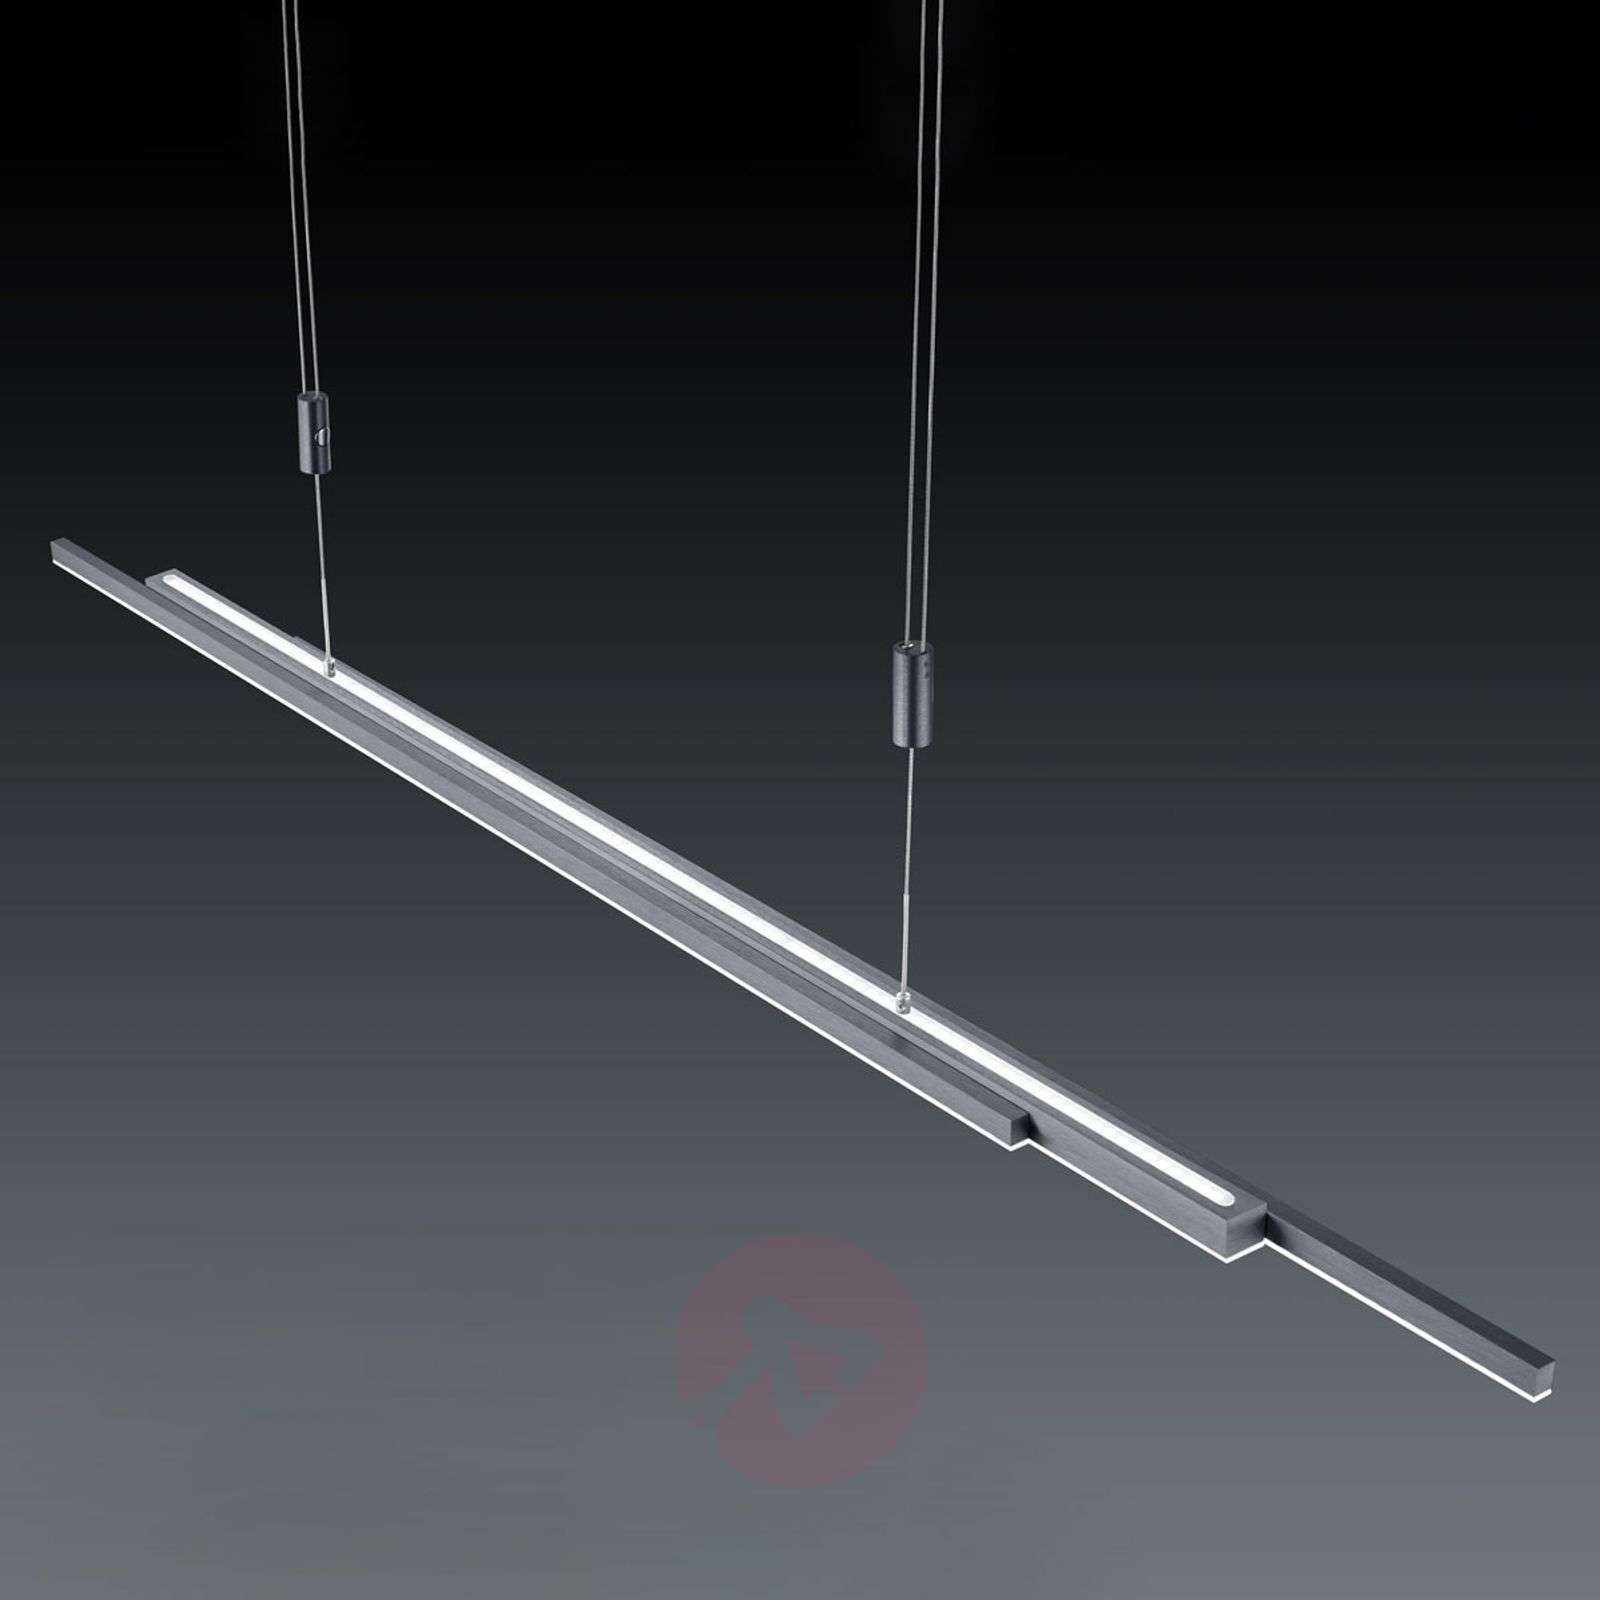 BANKAMP L-lightLINE LED-hanglamp up and down-1572012-01